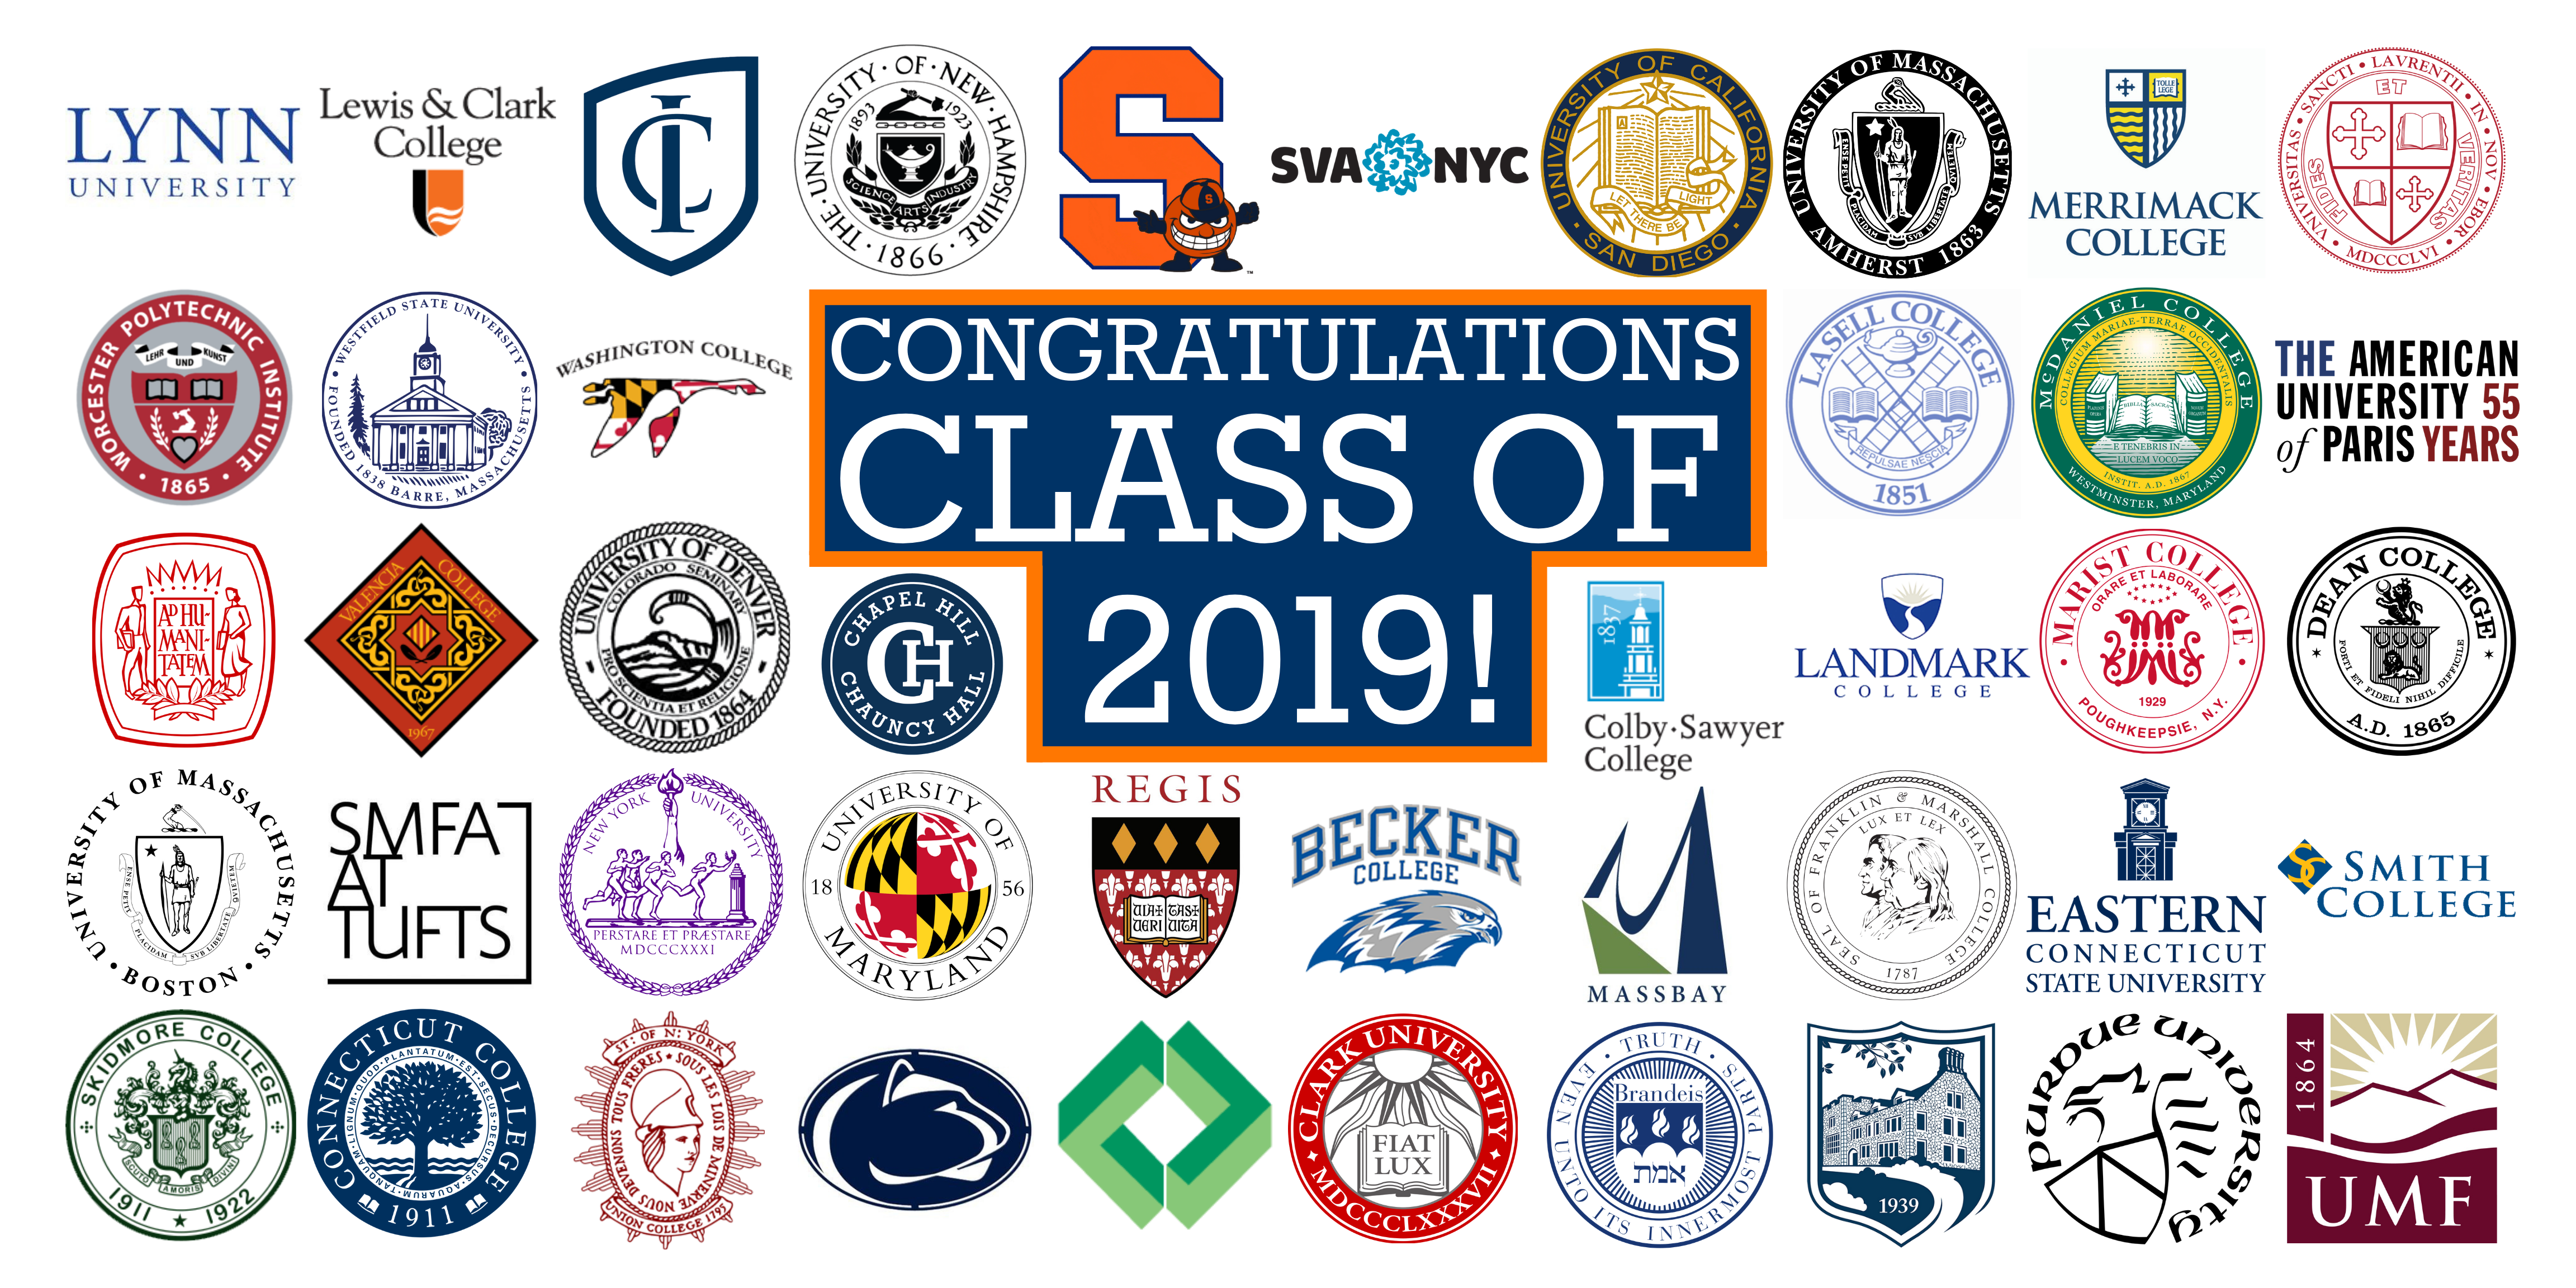 Class of 2019 College Banner UPDATED 5.8.19